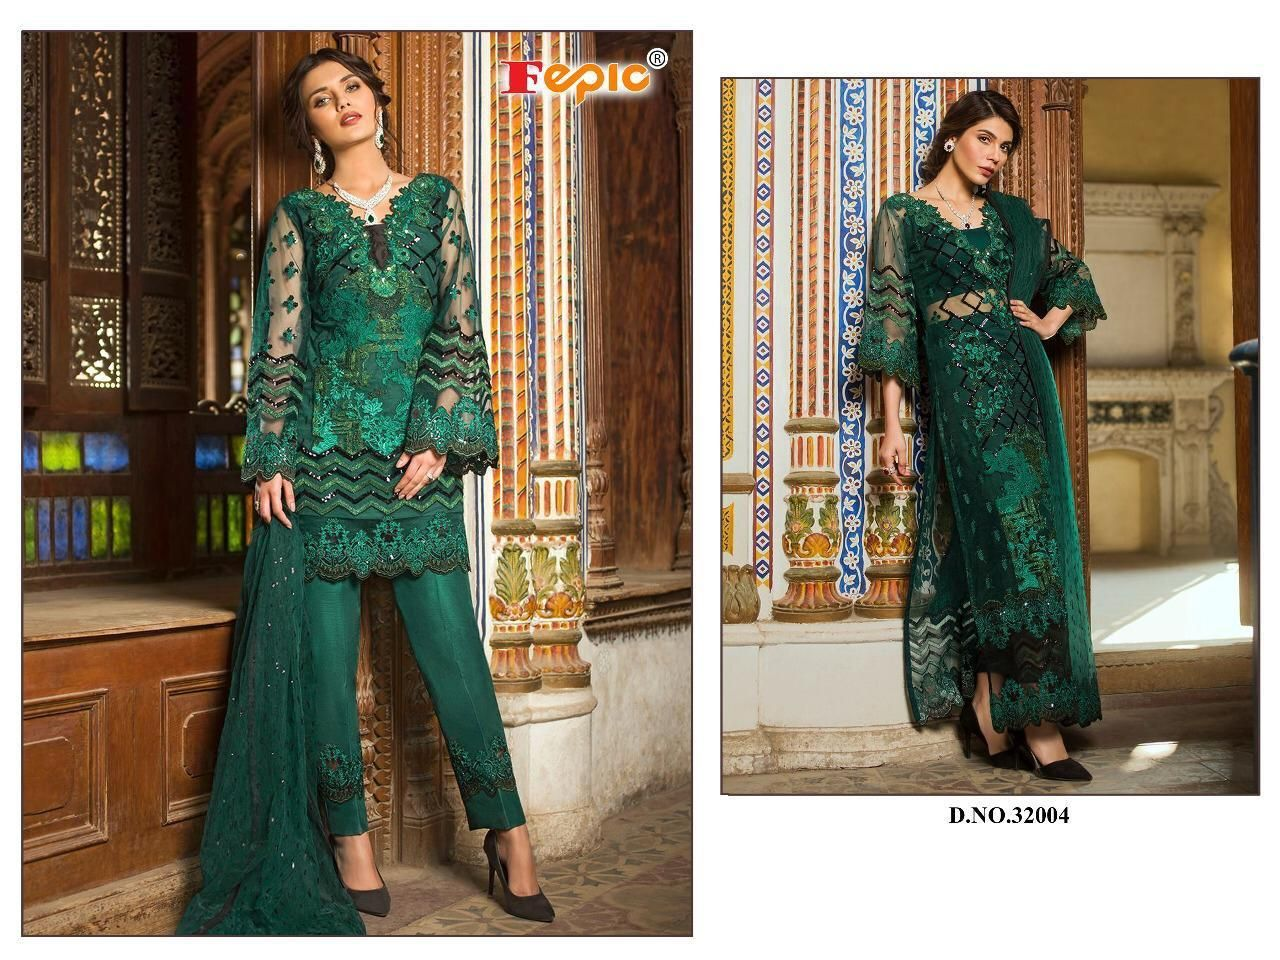 eda1d84486 FEPIC ROSEMEEN ZC NET PAKISTANI STYLE SALWAR SUIT CATALOG MANUFACTURER  WHOLESALER AND EXPORTER OF INDIAN ETHNIC WEAR IN INDIA | Sagar Impex